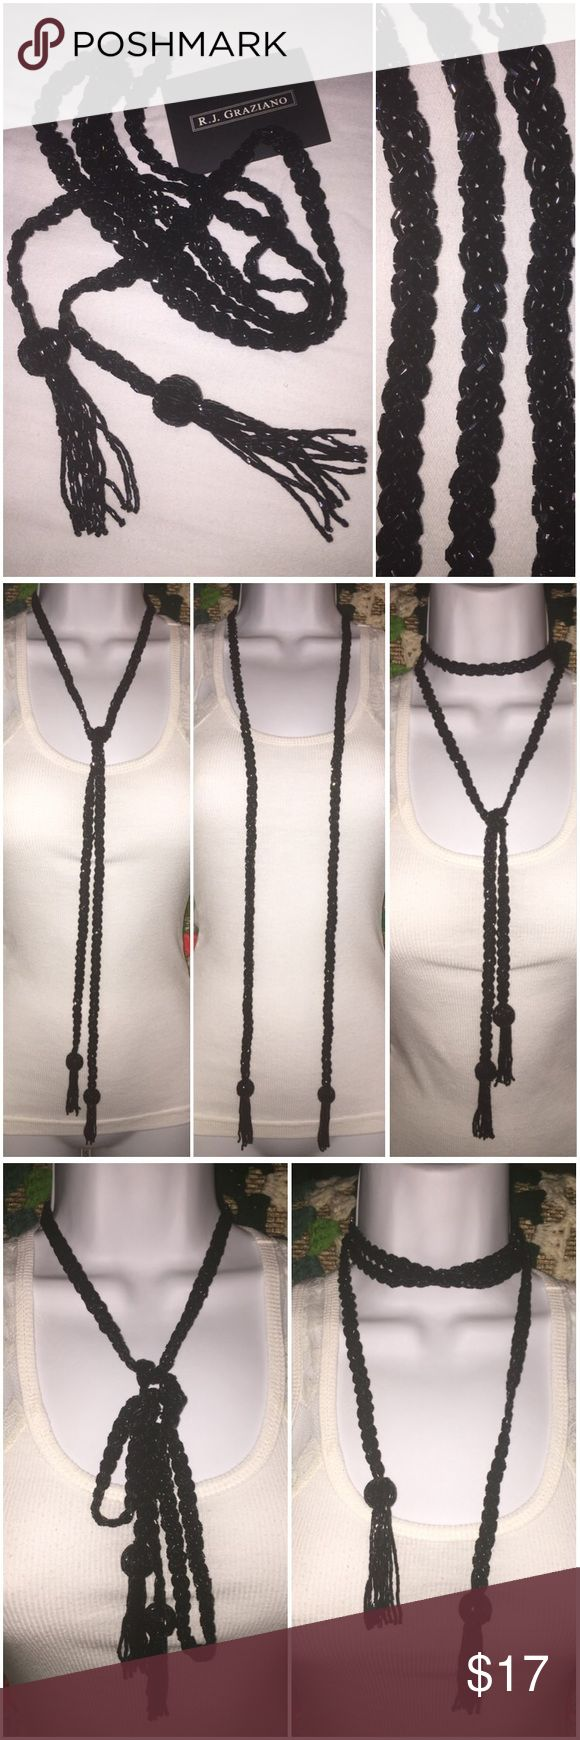 "R.J. Graziano black beaded lariat tassel necklace Gorgeous R.J. Graziano black beaded lariat tassel necklace. A timeless design captured in extraordinary detail. A Finely crafted creation from hand-fashioned black beads; with a braided design that ends in beaded balls with tassel dangle ends. So many ways to wear this lariat (some ways shown in pictures), very versatile! Compliments any wardrobe. Measures: 54"" long. Brand new without tags, carded, in poly bag! R.J. Graziano Jewelry Necklaces"